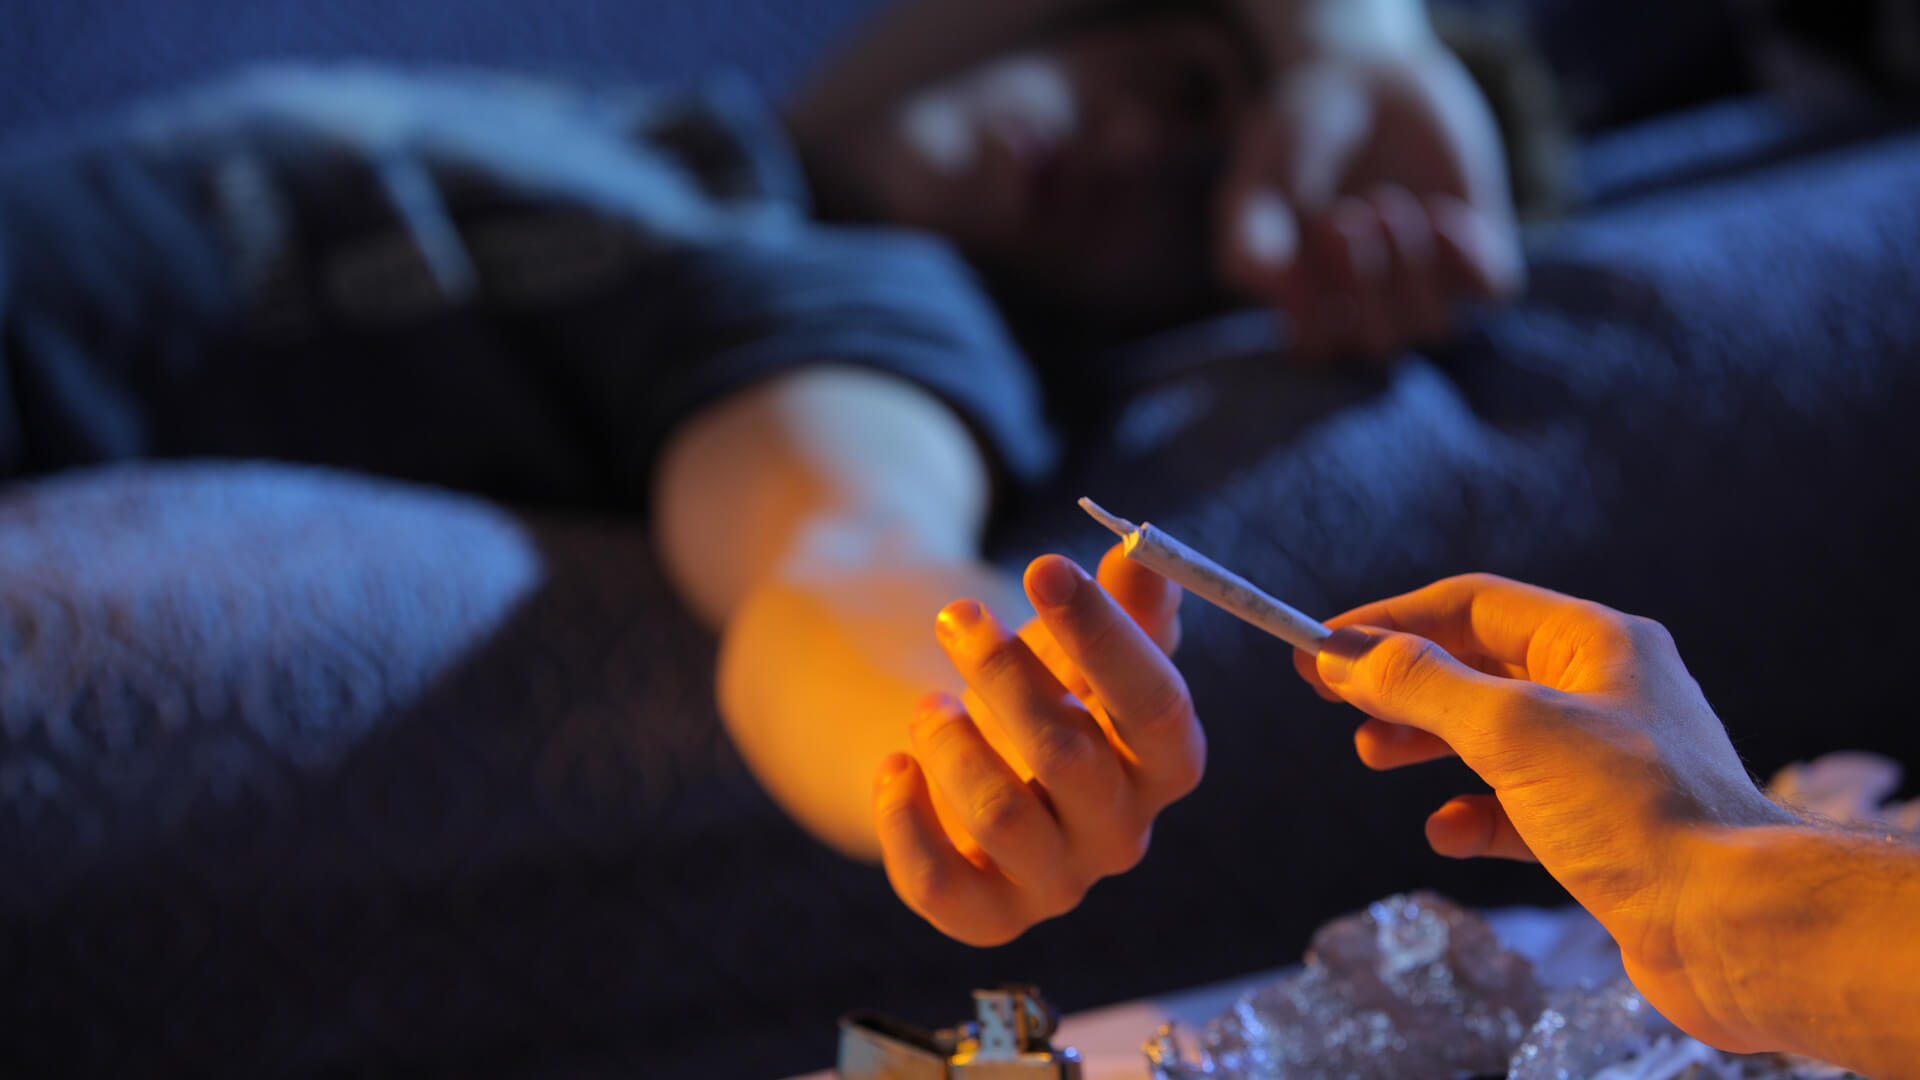 A young man passing a joint to his friend lying on the couch